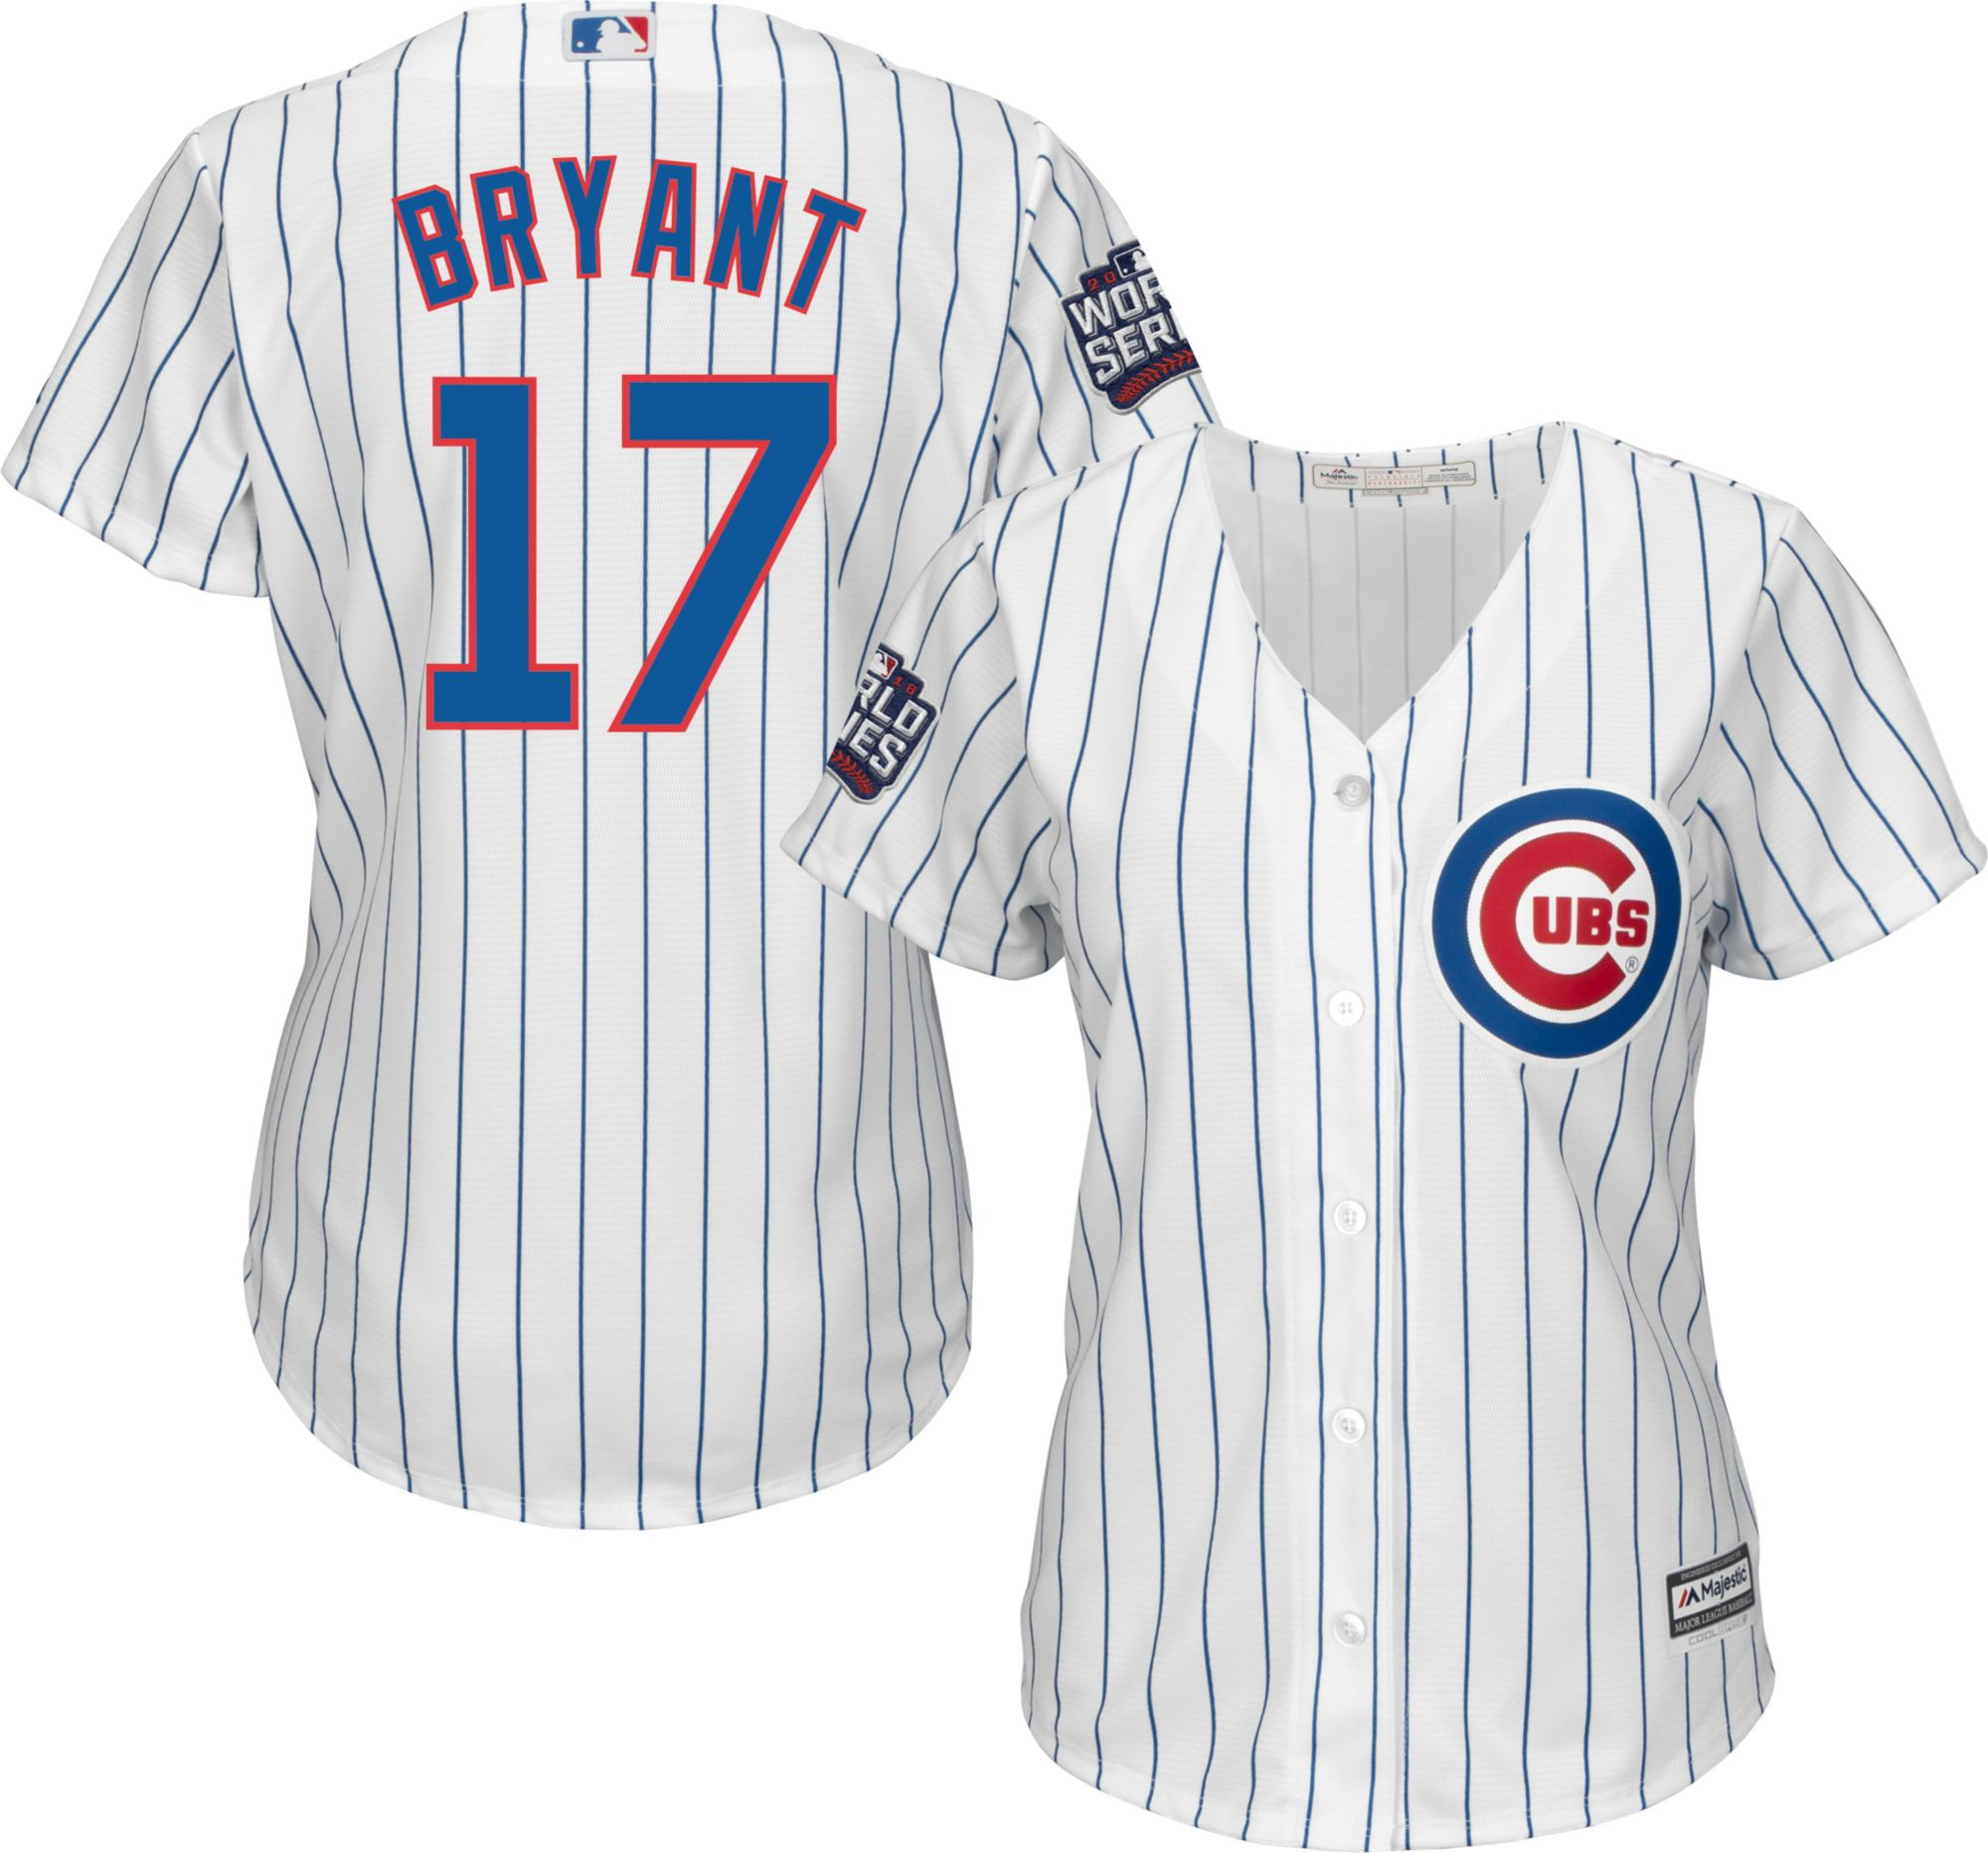 size 40 328ac 186dd italy chicago cubs world series jersey 4e386 73c8e